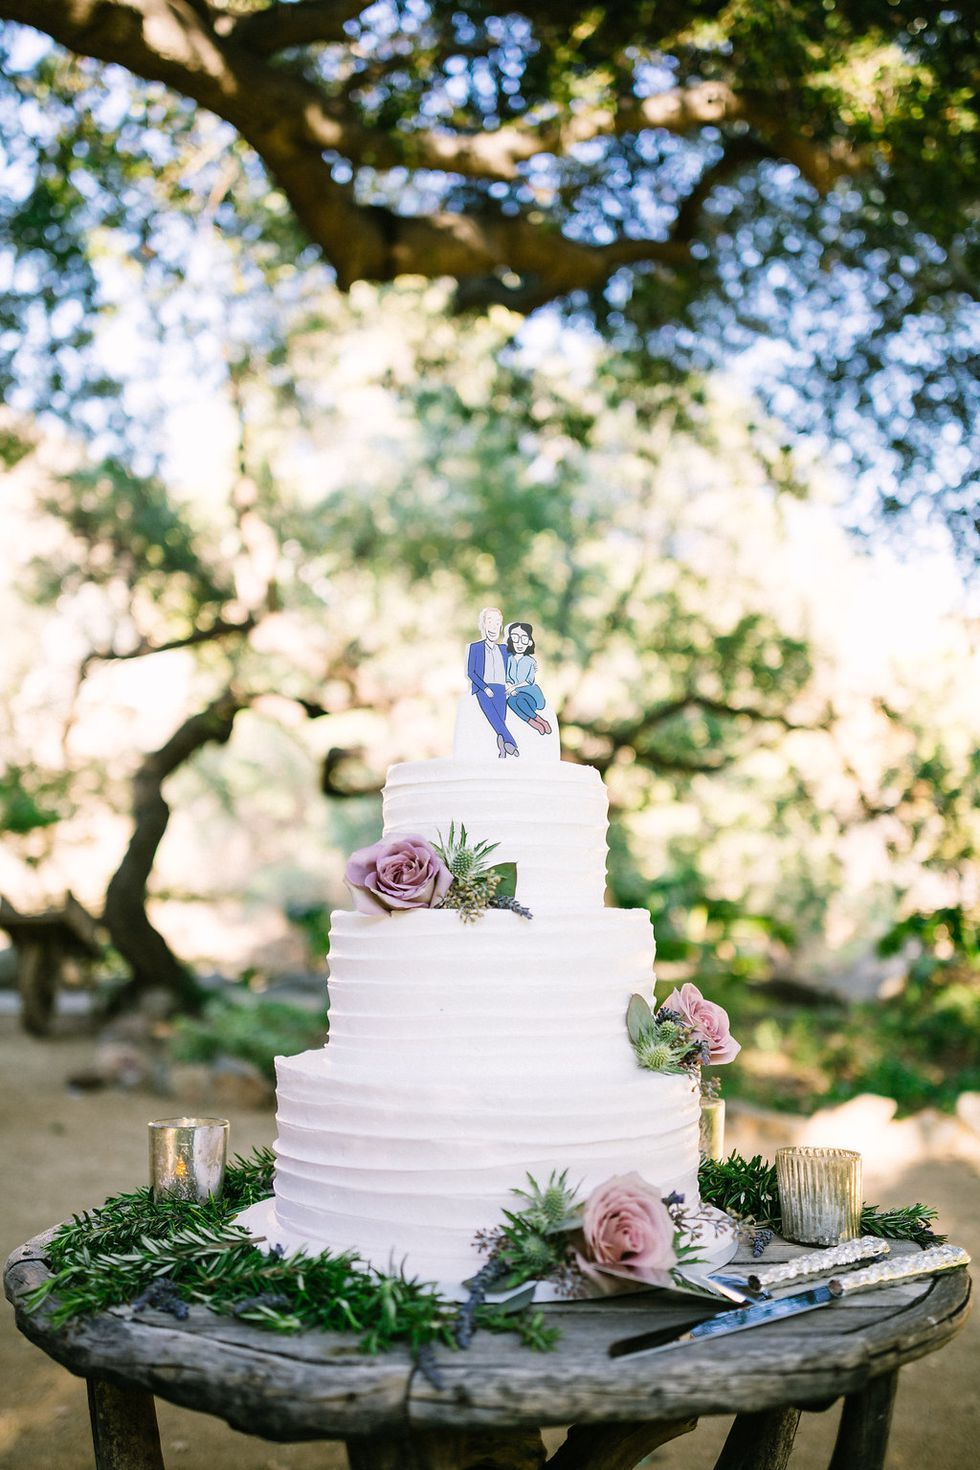 A rustic wood table makes an outdoorinspired wedding cake stand